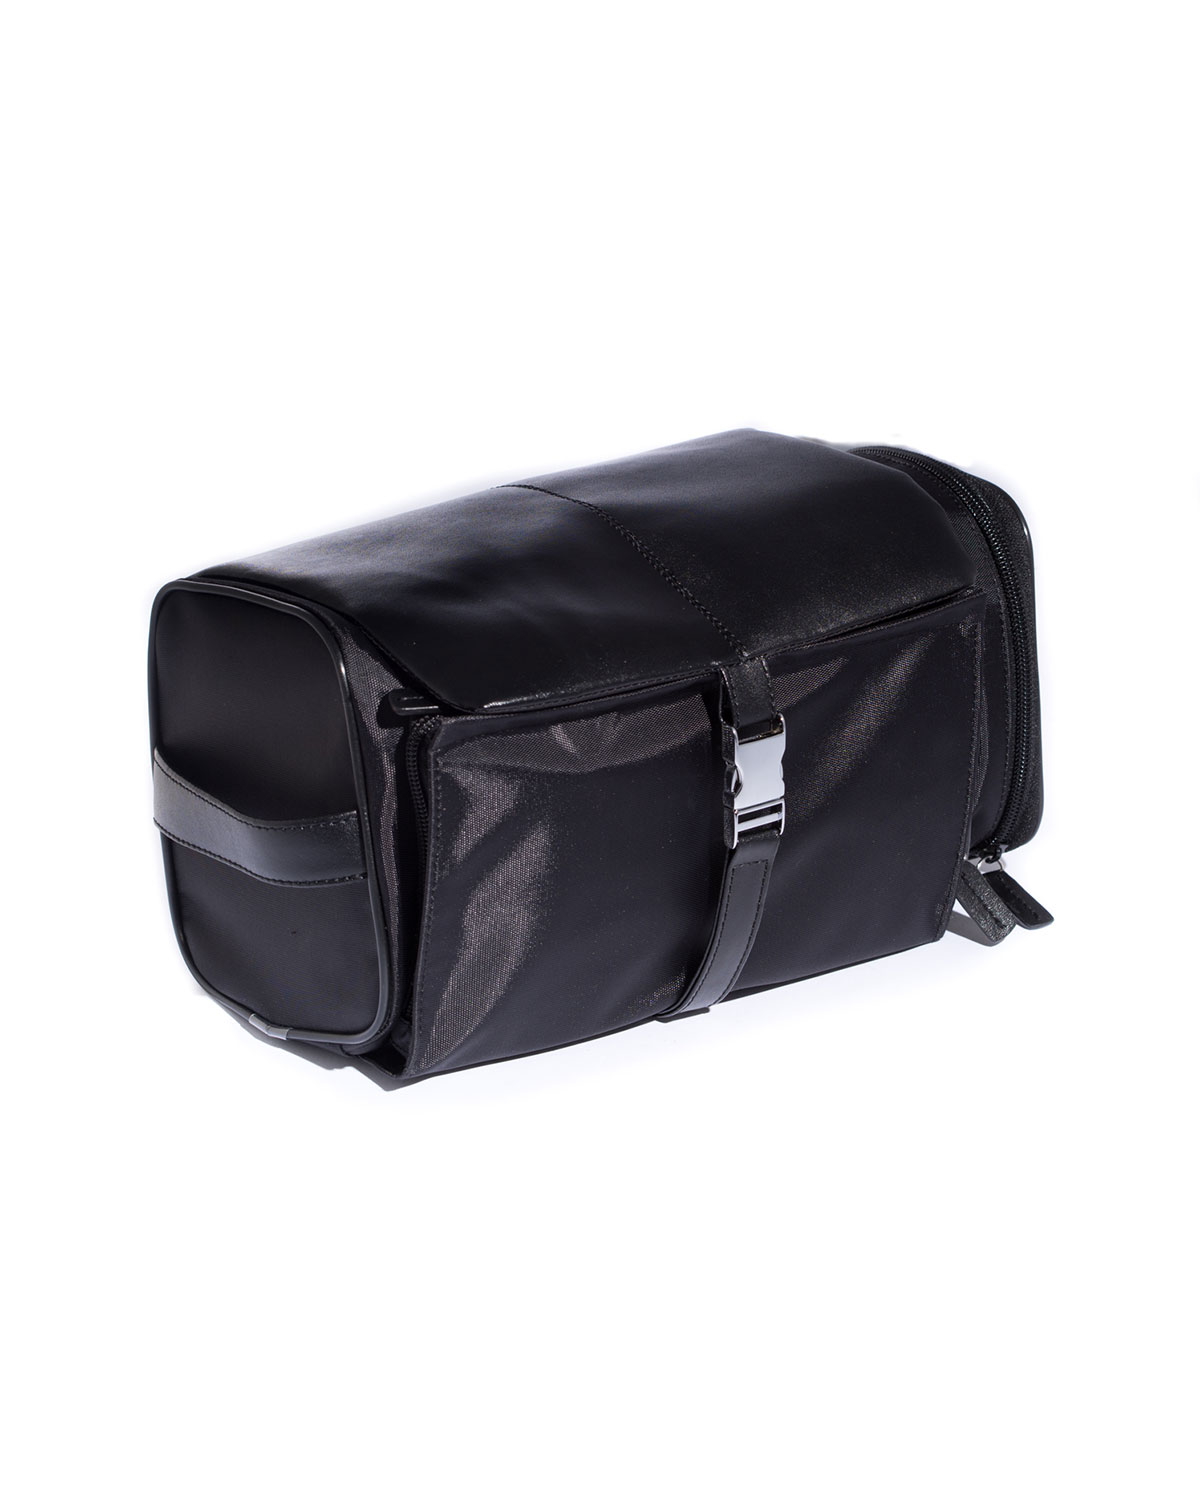 Leather and Nylon Travel Essentials Kit in Case